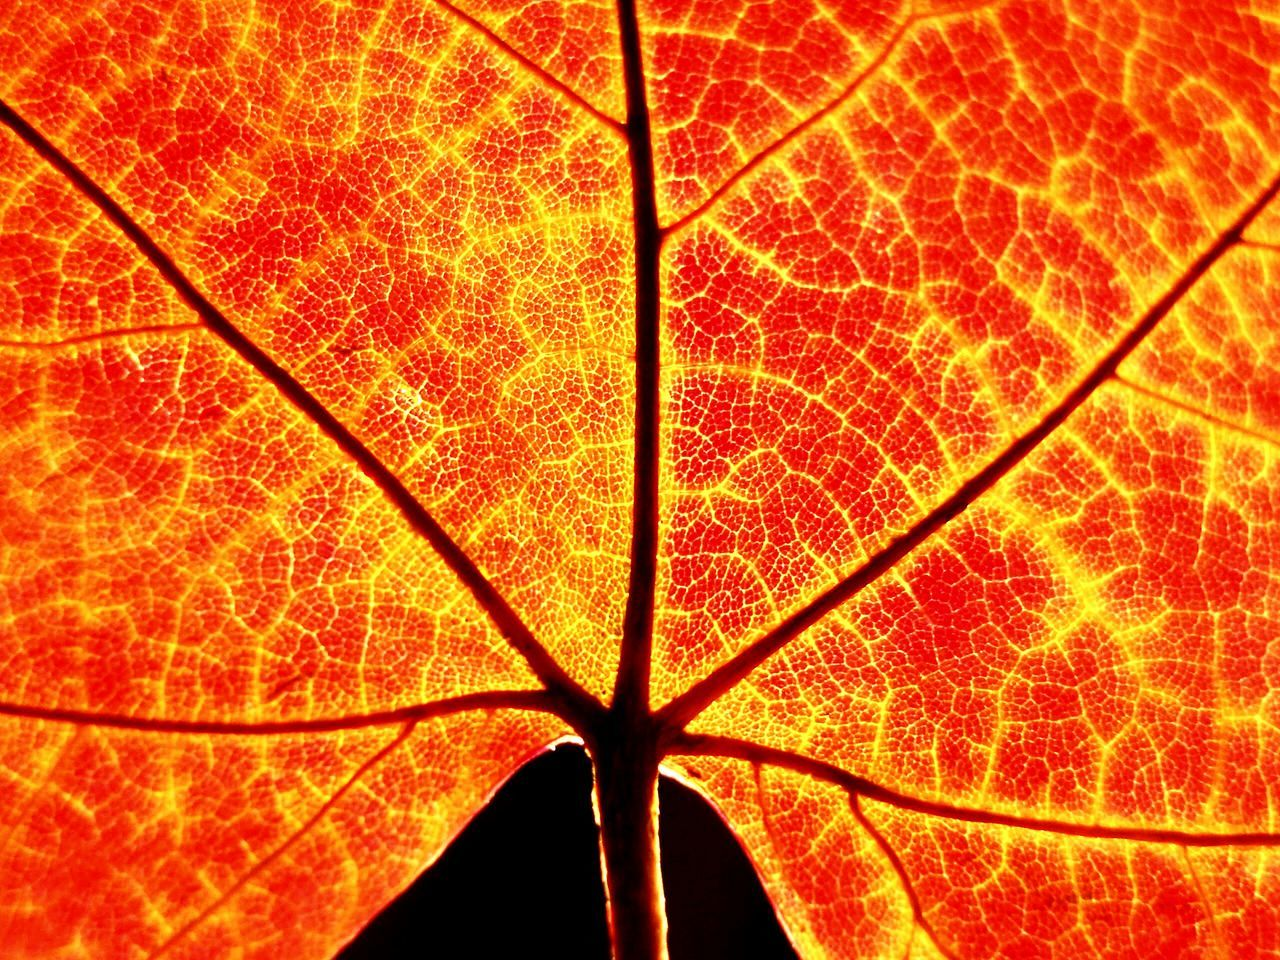 Beautiful stock photos of leaf, Extreme Close Up, Leaf, Leaf Vein, Natural Pattern